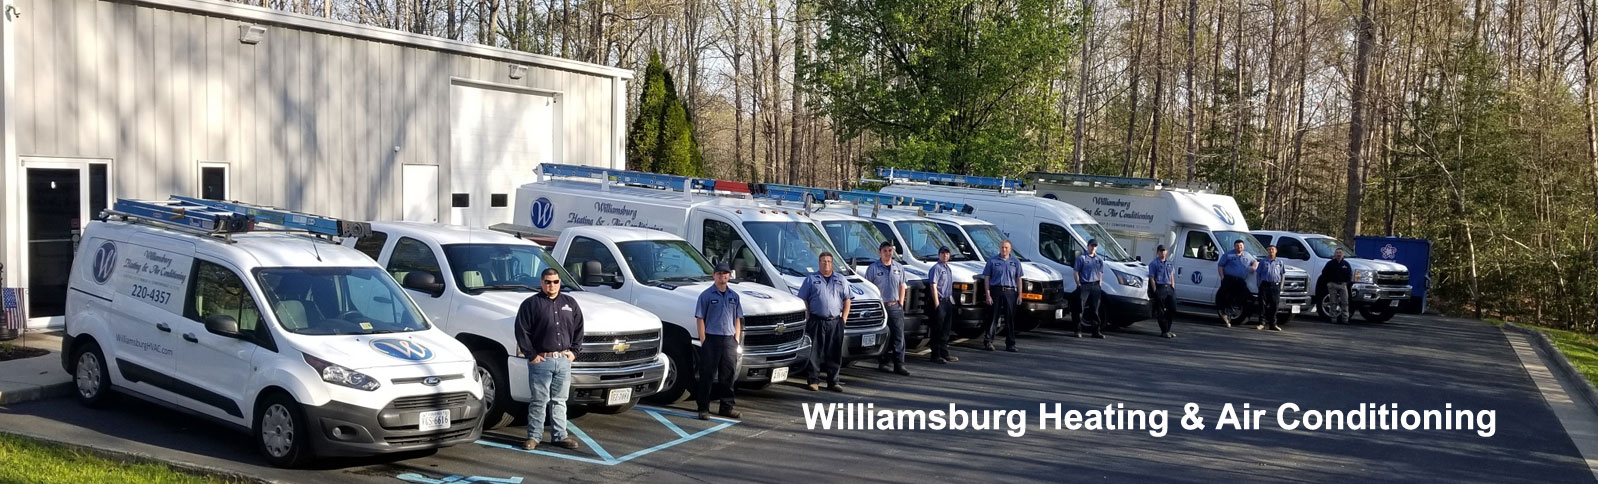 Williamsburg Heating & Air Conditioning